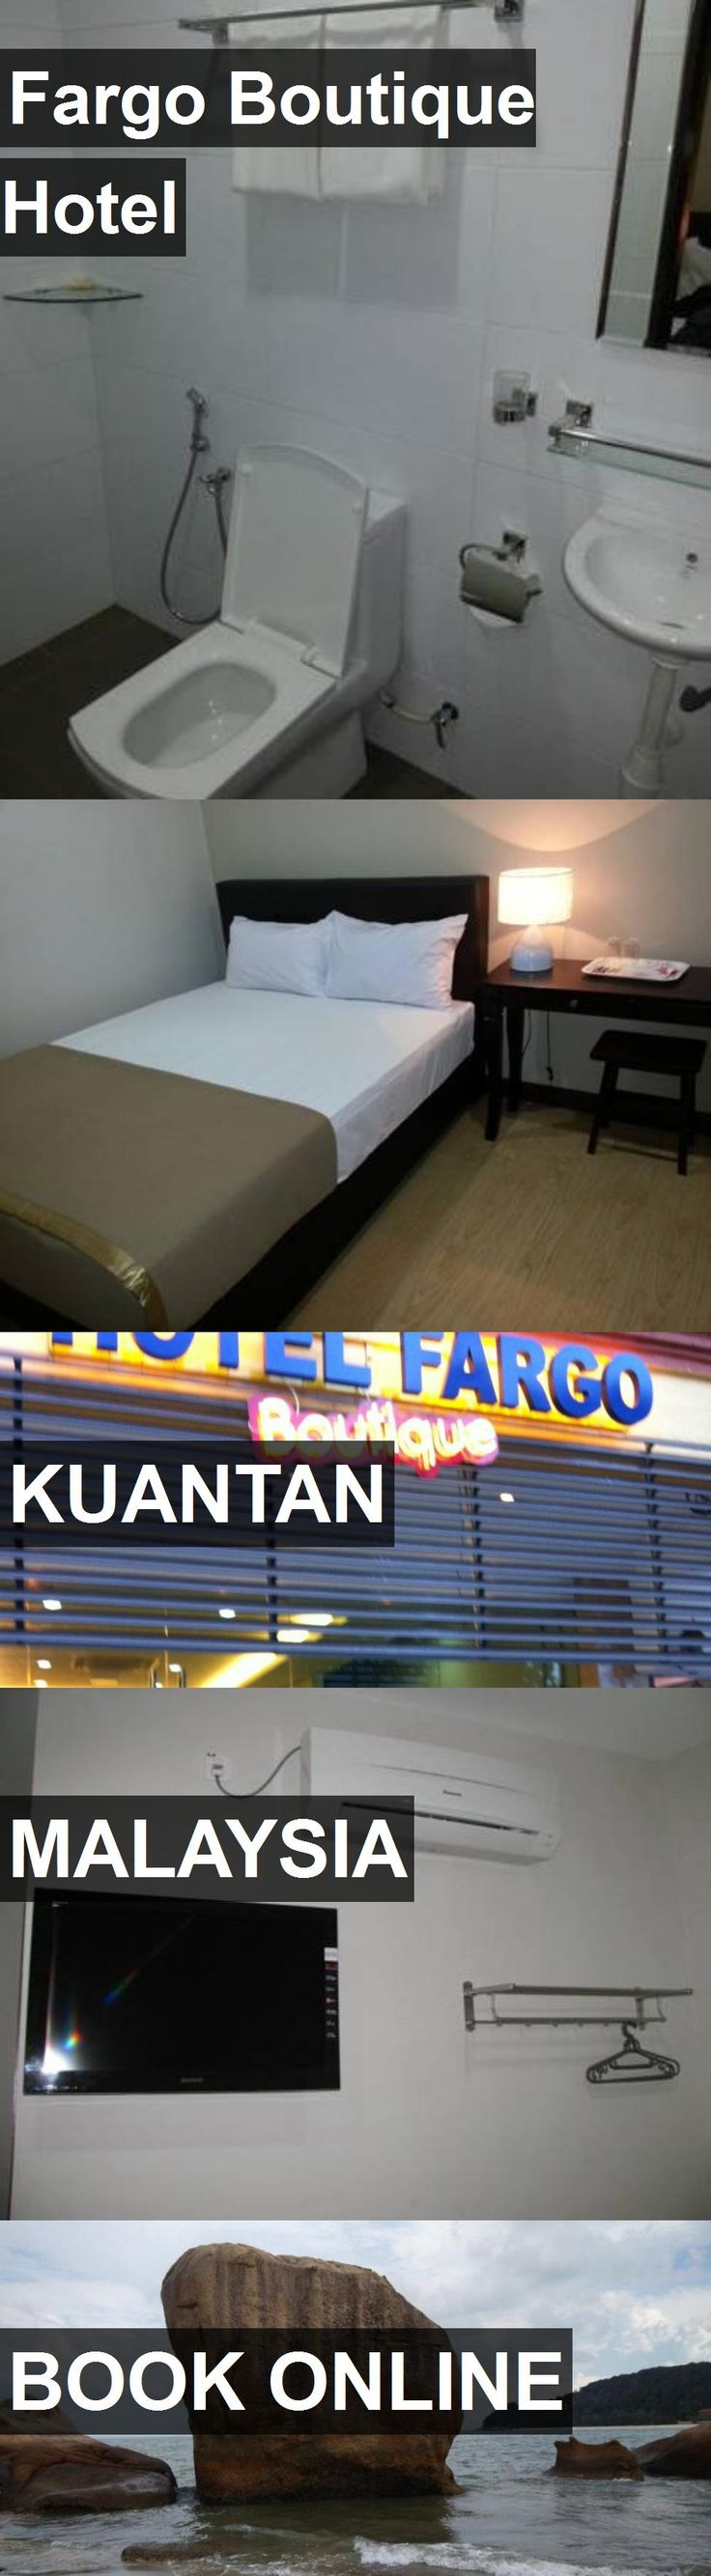 Fargo Boutique Hotel in Kuantan, Malaysia. For more information, photos, reviews and best prices please follow the link. #Malaysia #Kuantan #travel #vacation #hotel